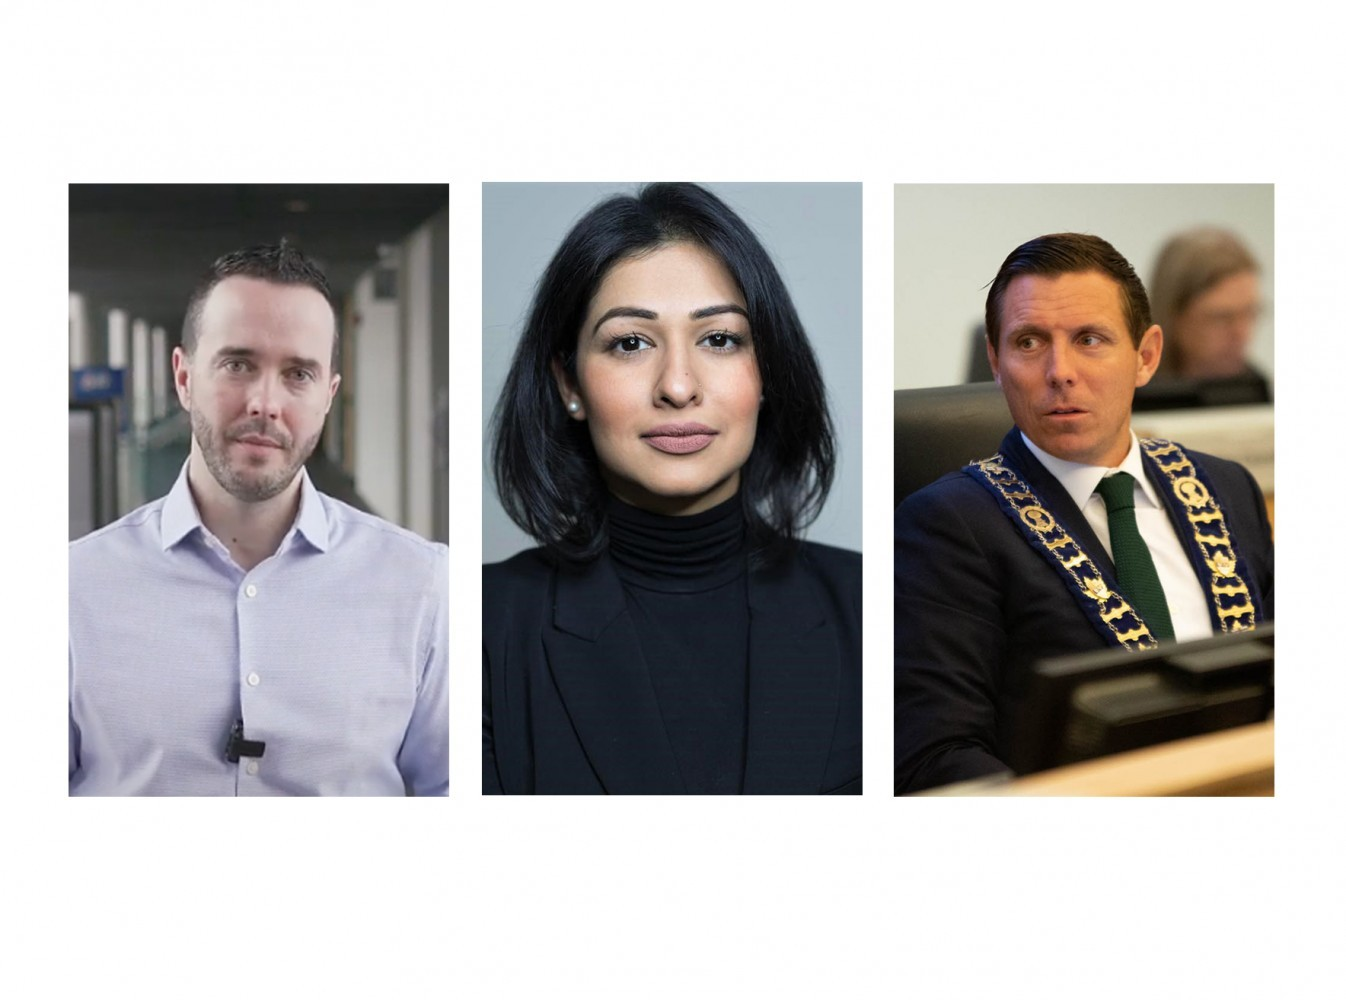 '30 days is not enough time': Countless calls to extend corruption investigation finally heard by City